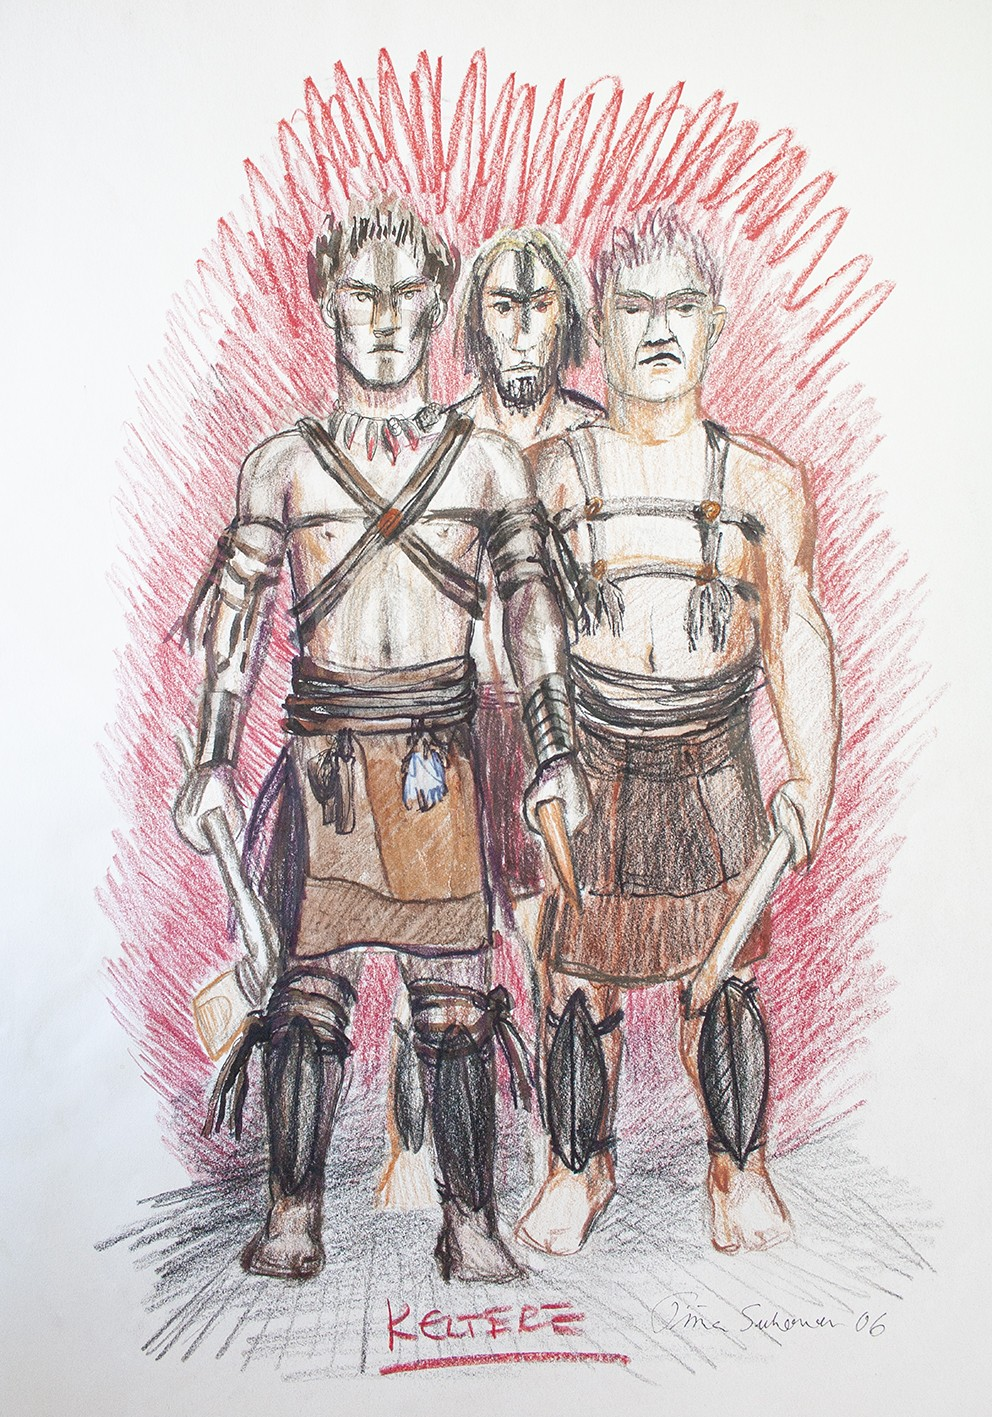 Three men wearing Bronze Age Celtic fighter costumes with leather straps and shin protectors. The men are equipped with axes.